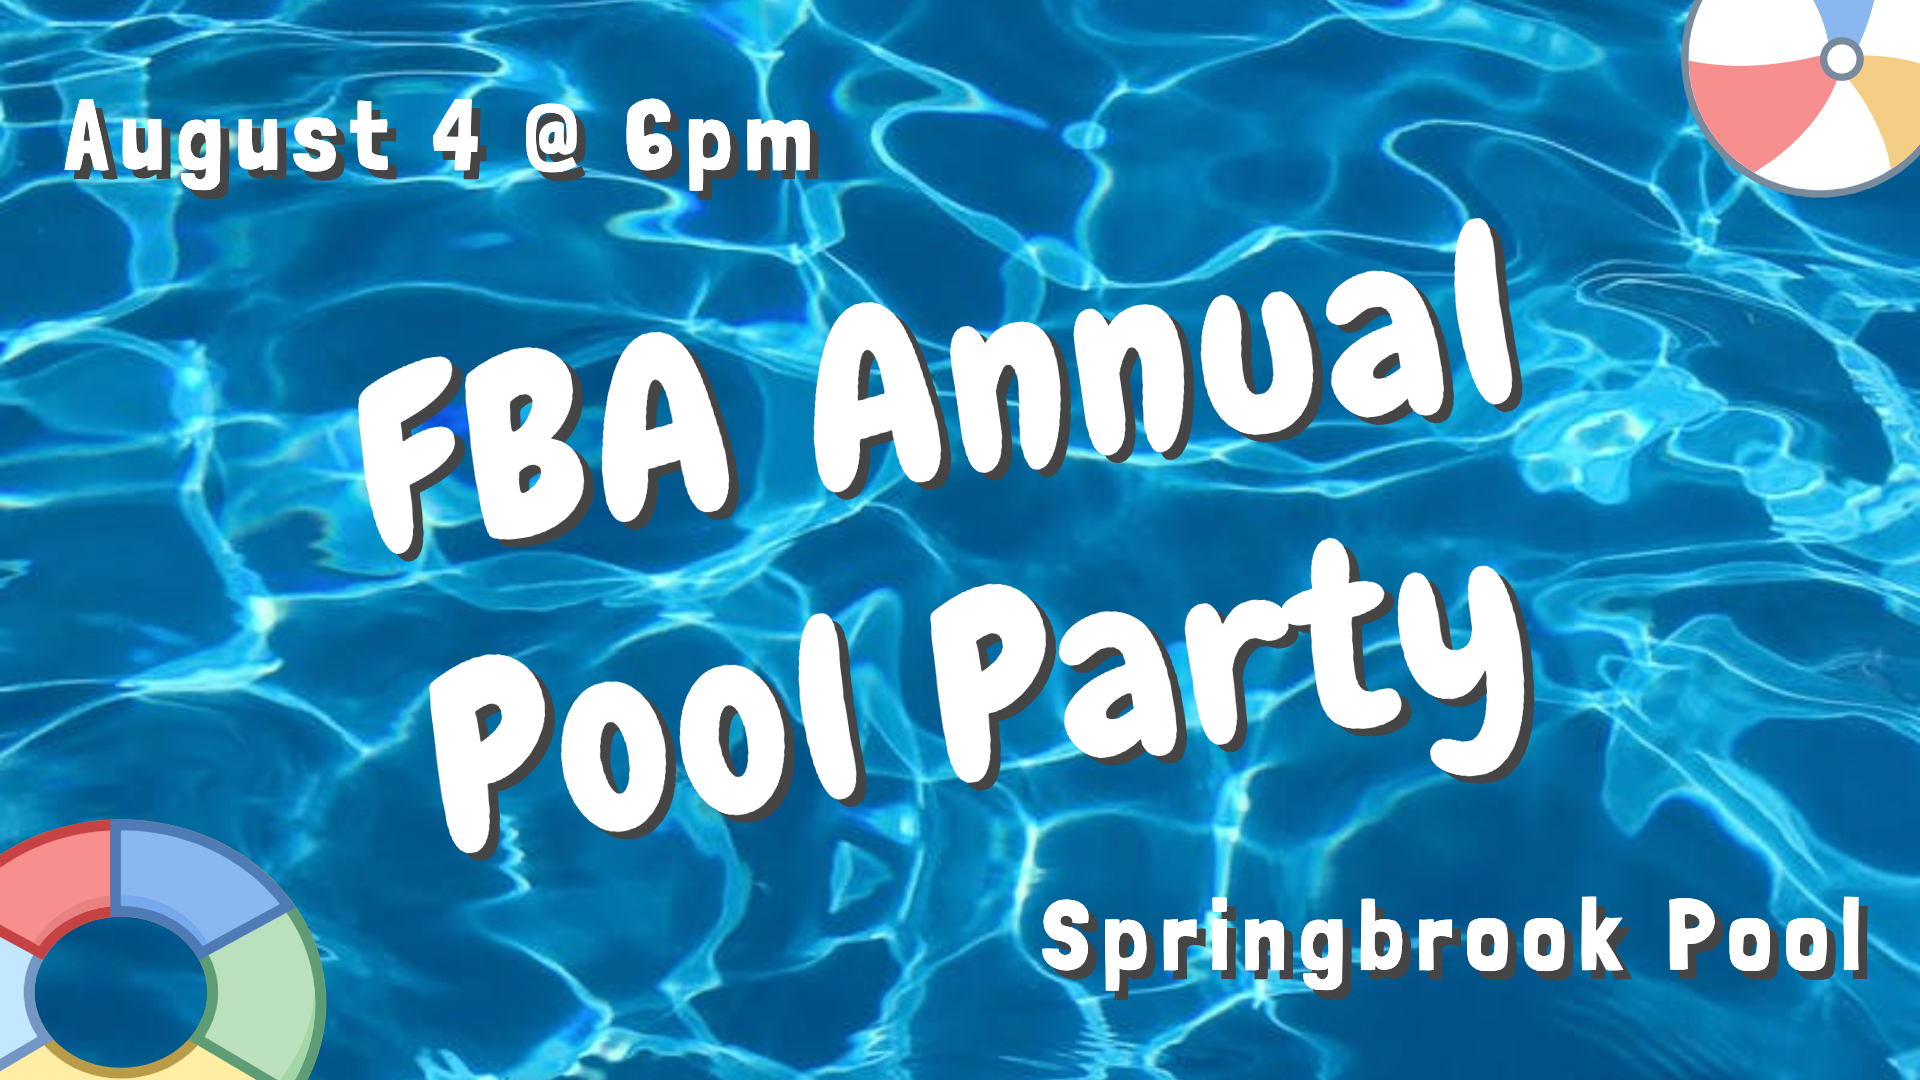 FBA Annual Pool Party 2019 image